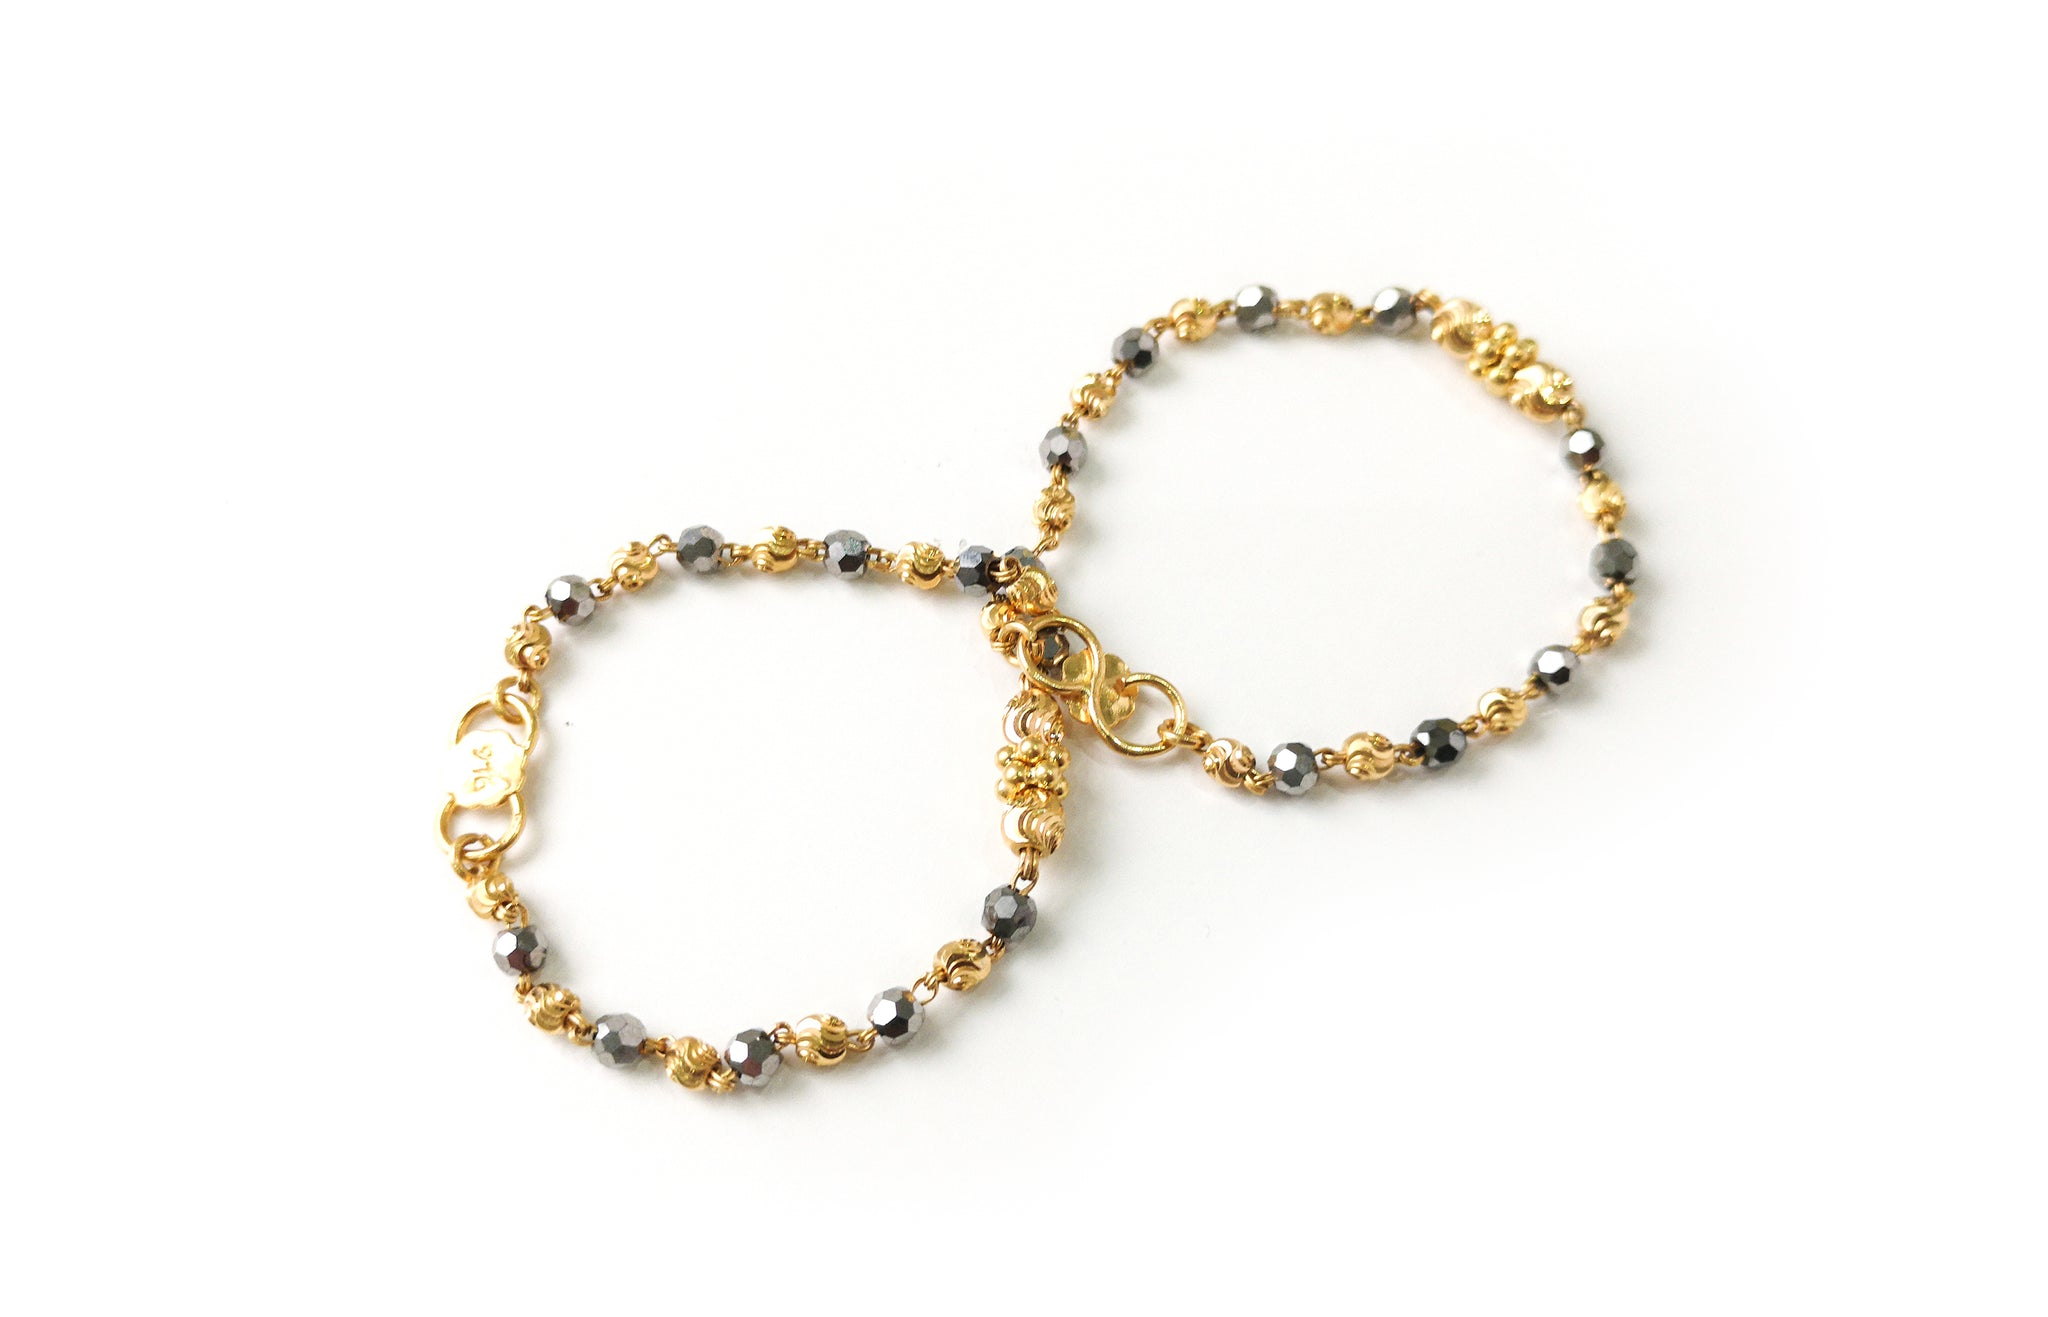 22ct Gold Children's Bracelets with Silver Faceted Crystals and Diamond Cut Gold Beads CBR-7713